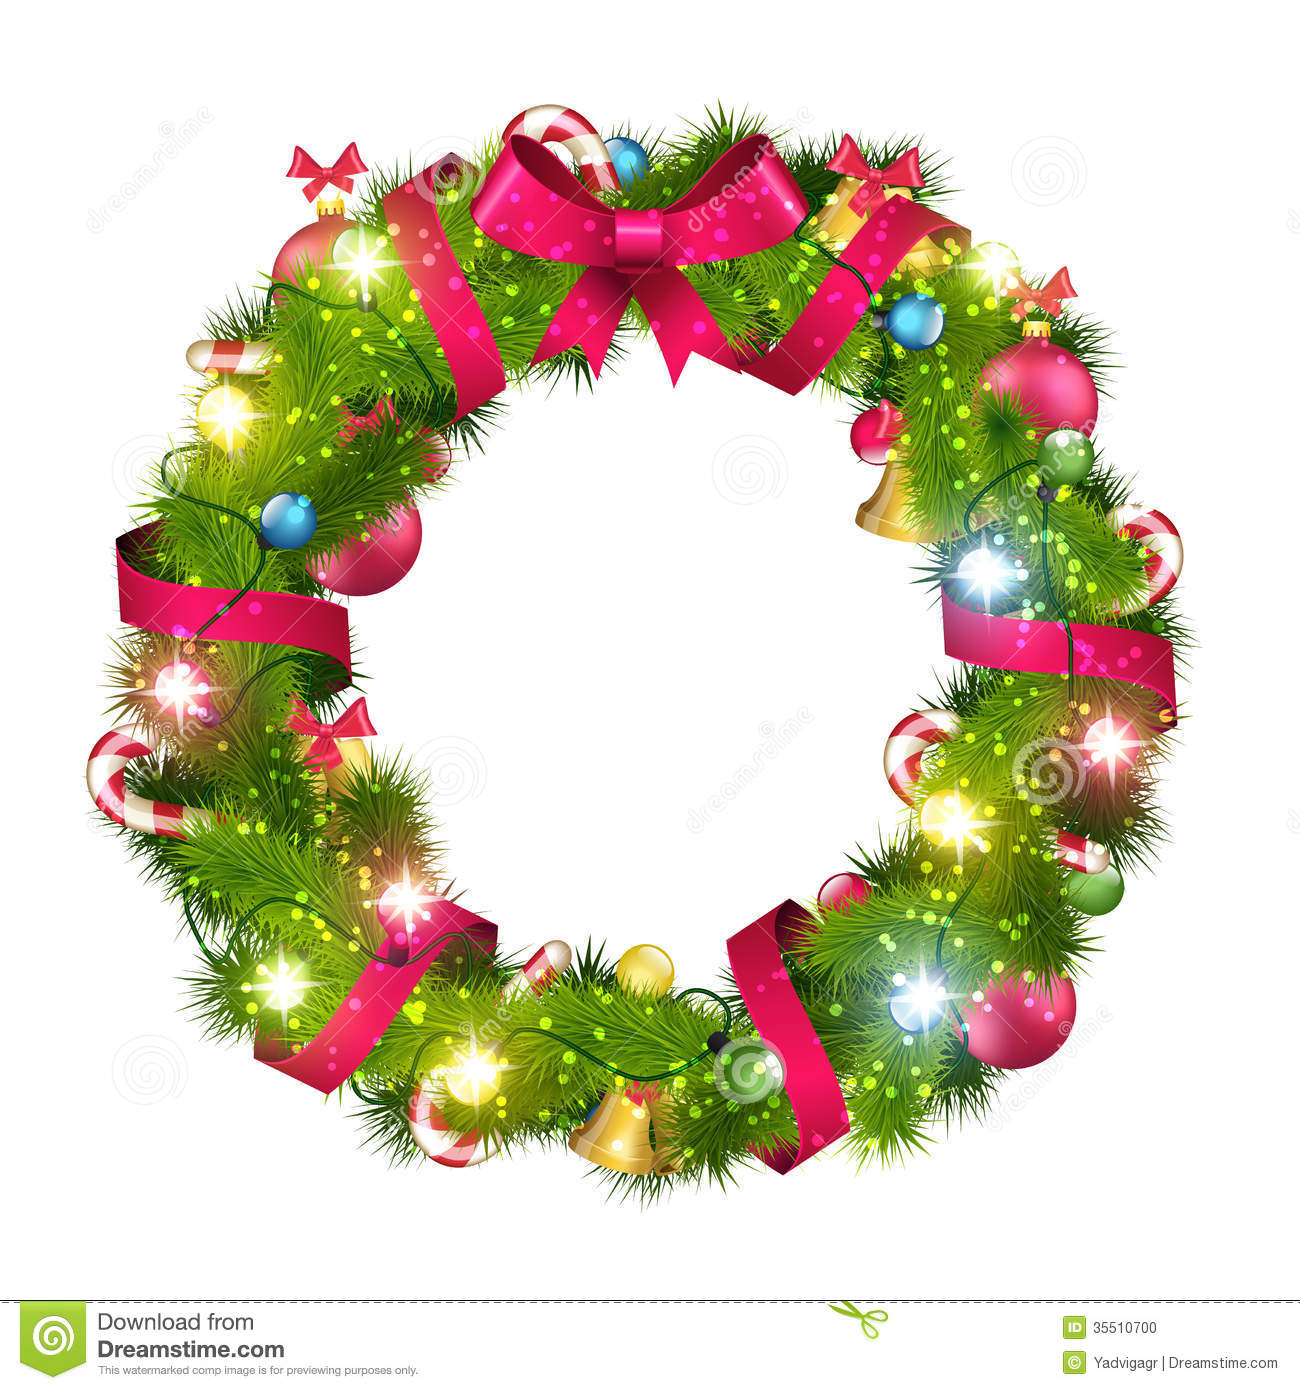 Christmas wreath stock vector. Illustration of white.